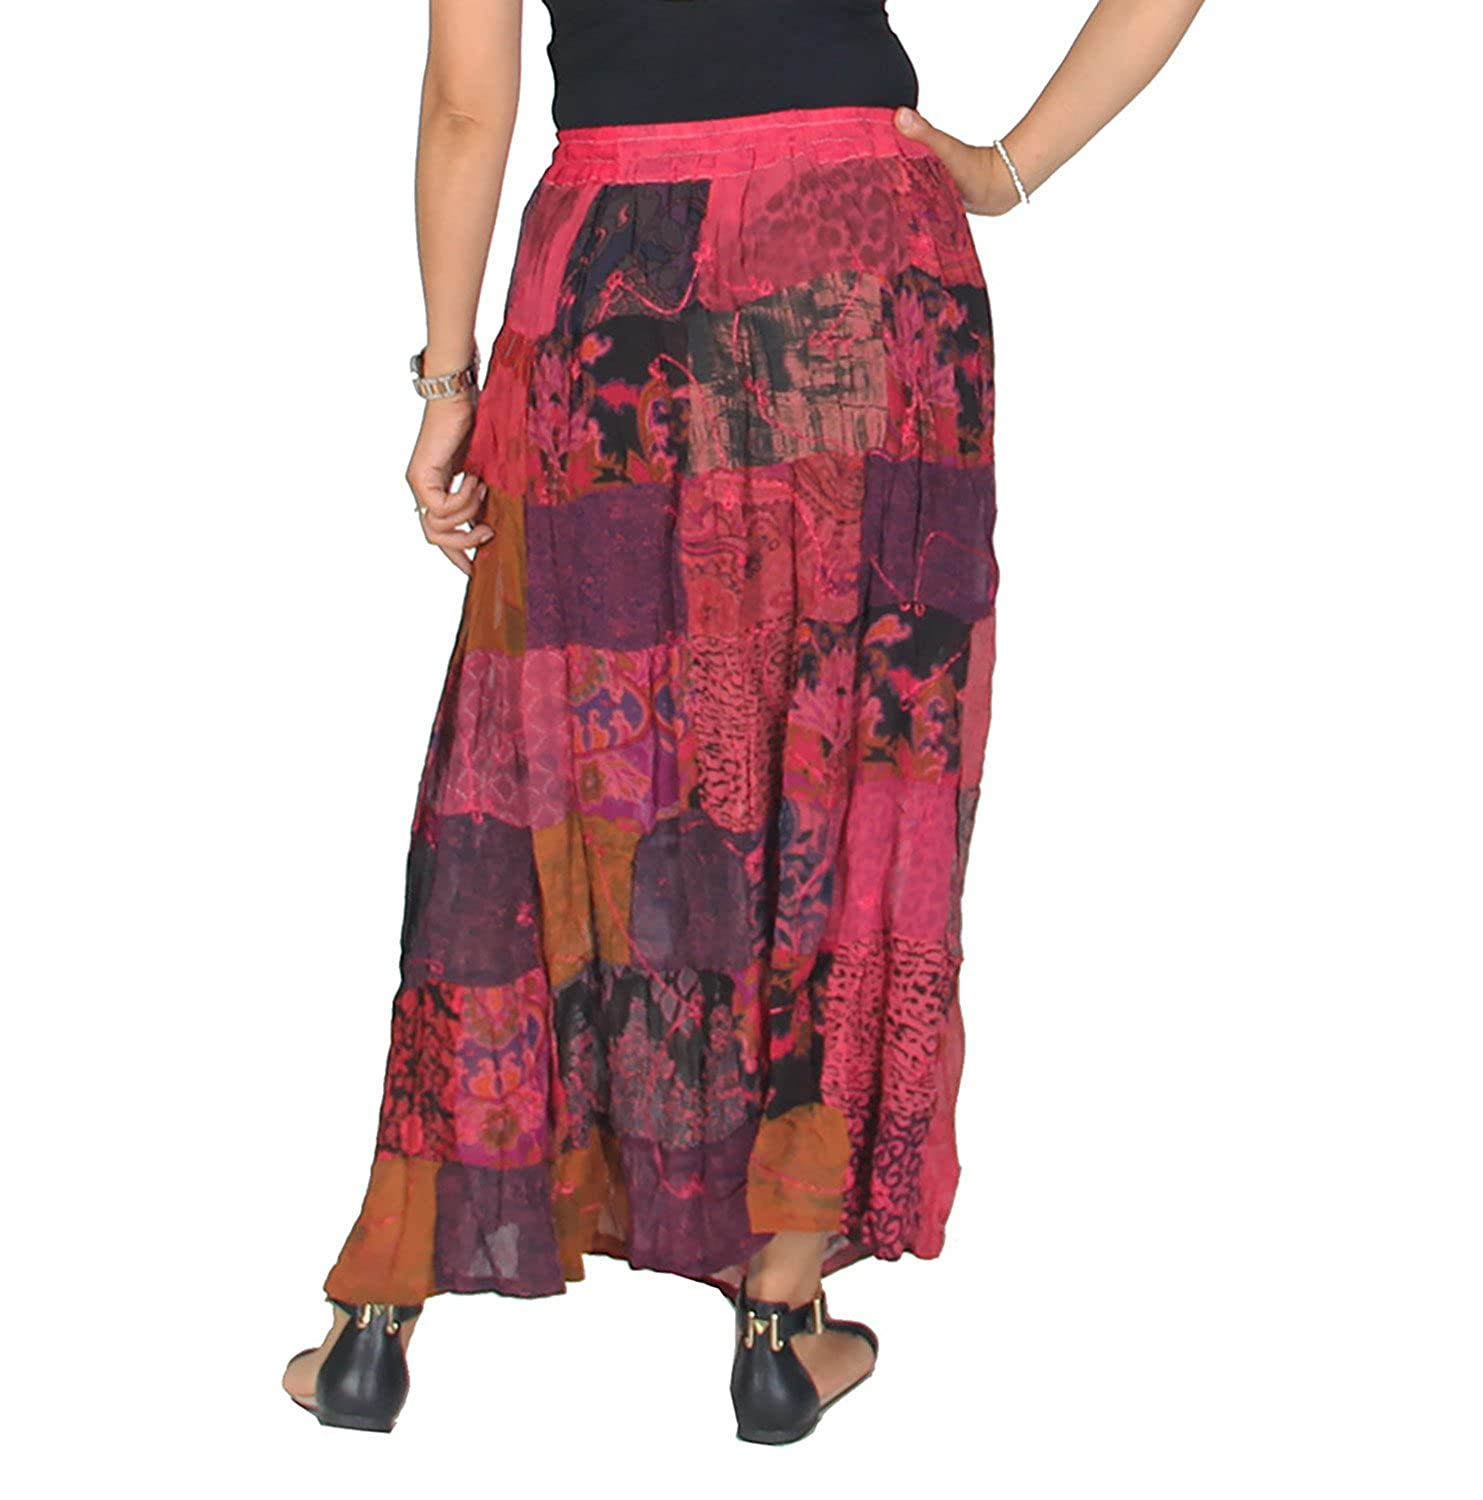 fc06f248cd KayJayStyles Women's Hippie Bohemian Gypsy Vintage Ethnic Patchwork Long  Skirt (Pink) at Amazon Women's Clothing store: